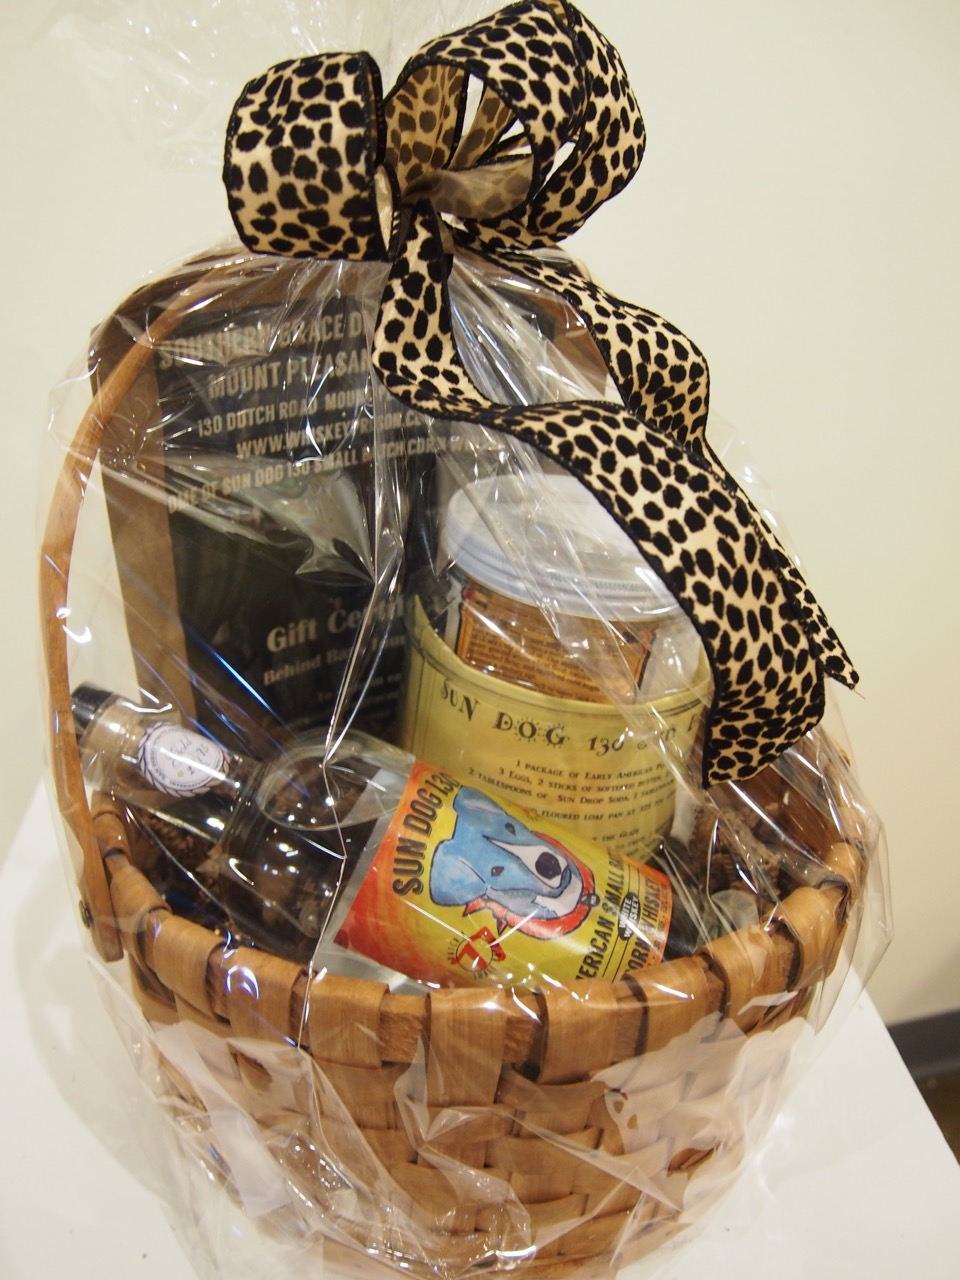 $55 Gift Basket from Southern Grace Distillery